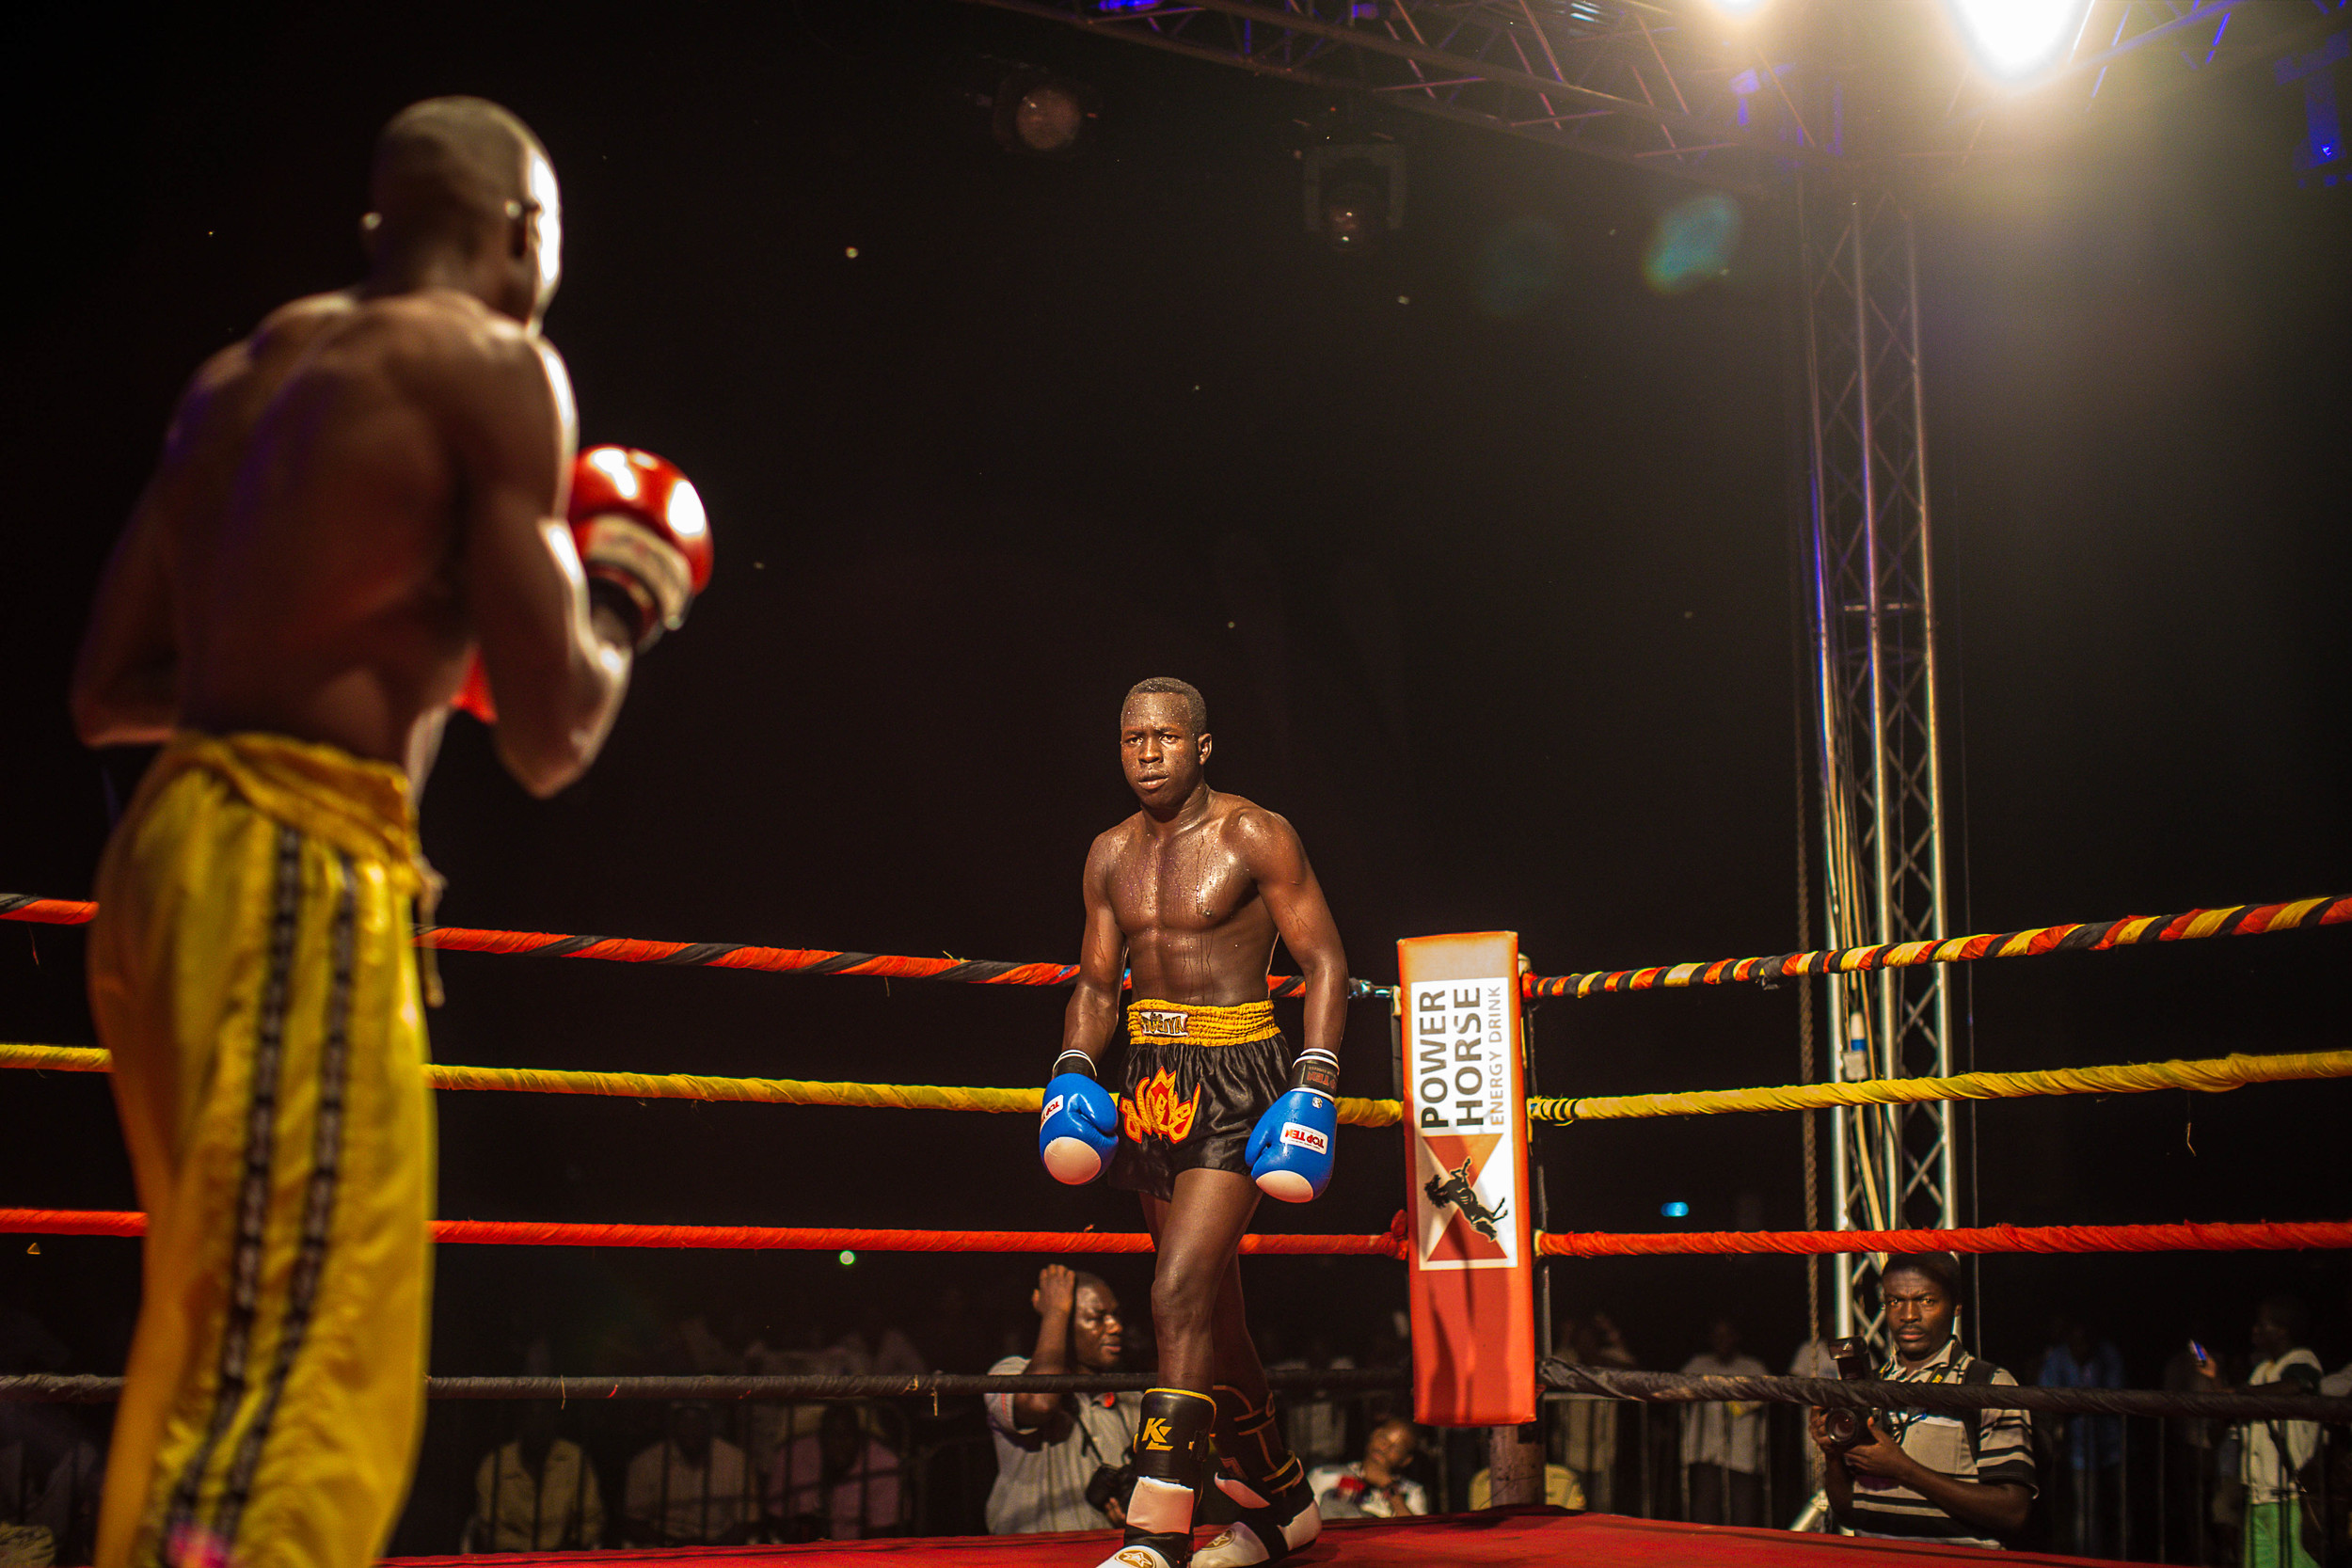 Abayok circles his opponent in the ring.